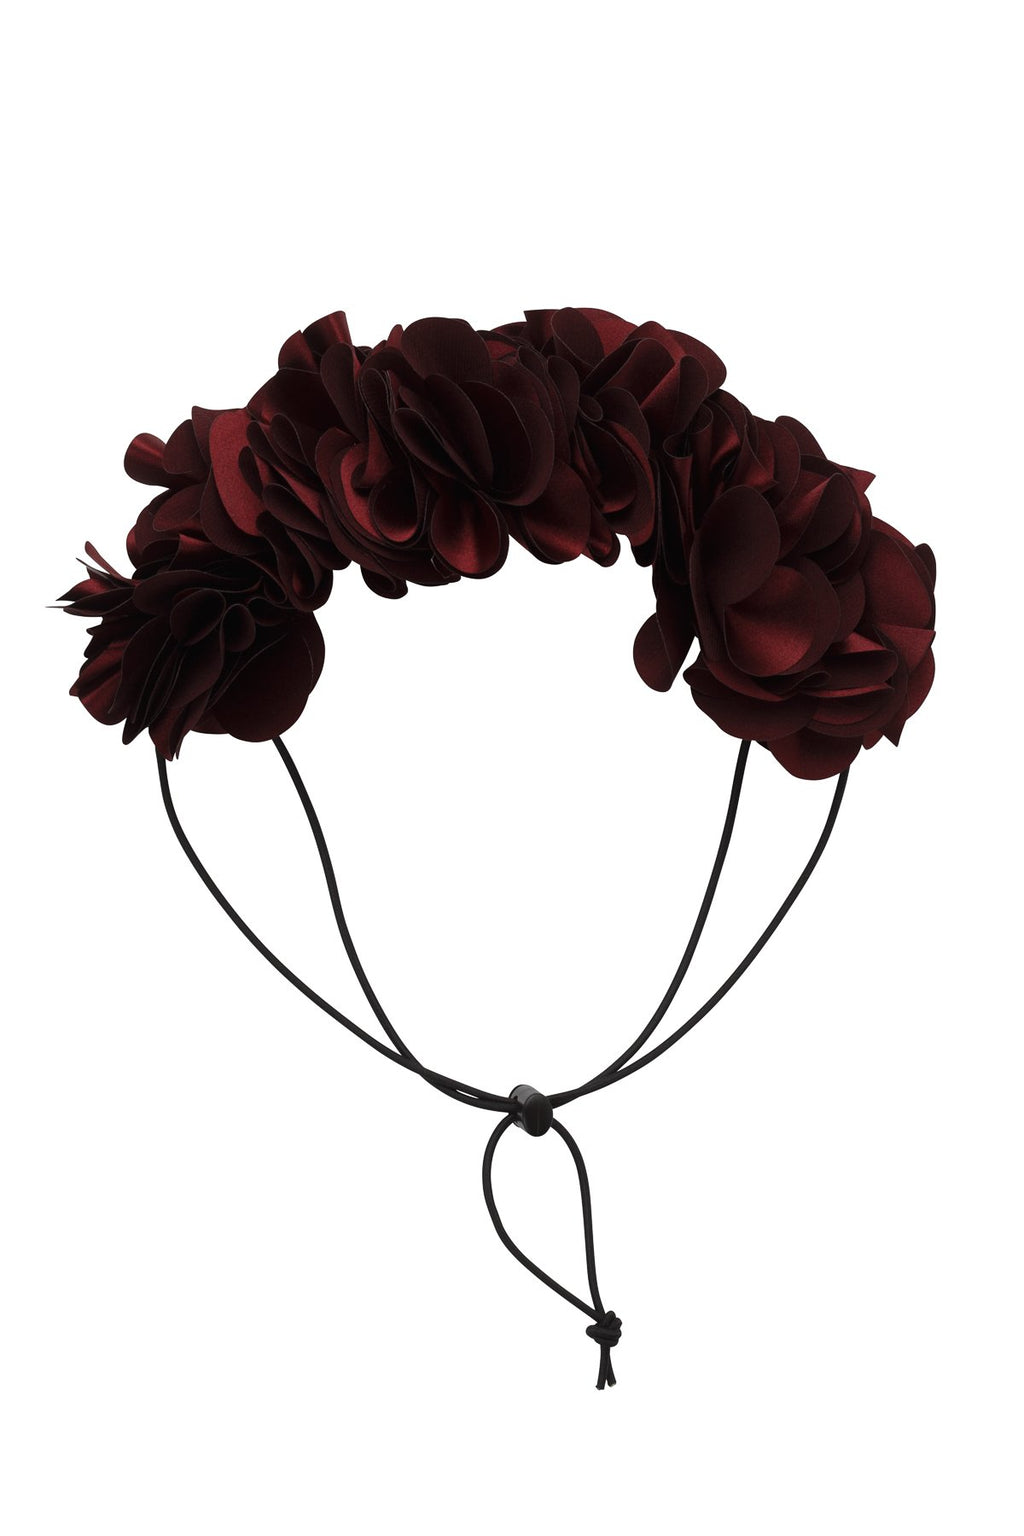 Floral Wreath Petit - Burgundy - PROJECT 6, modest fashion